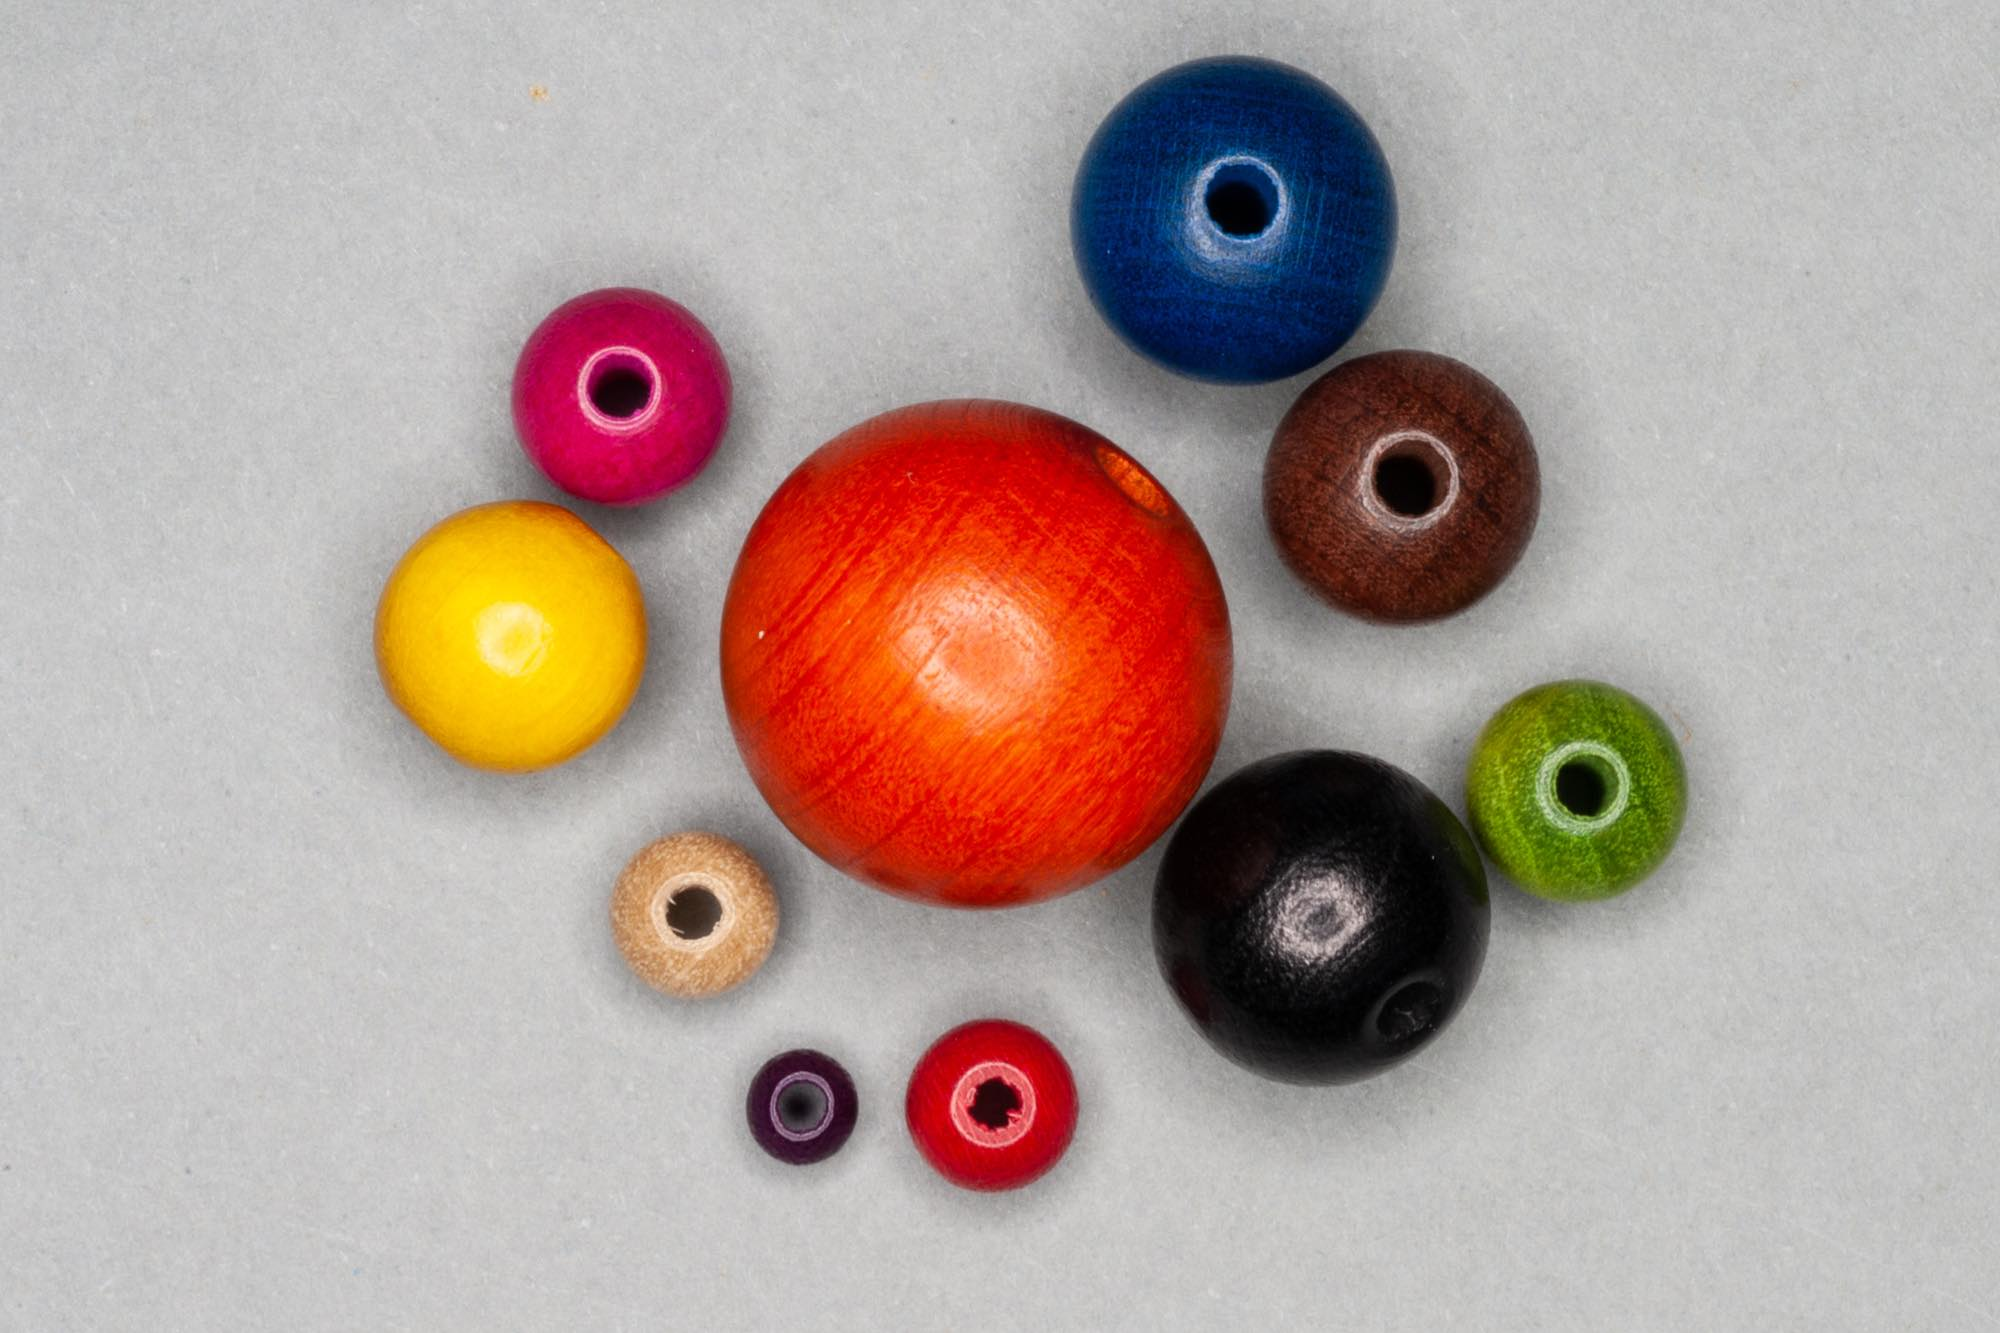 Round Wooden Bead 18mm/2mm Hole